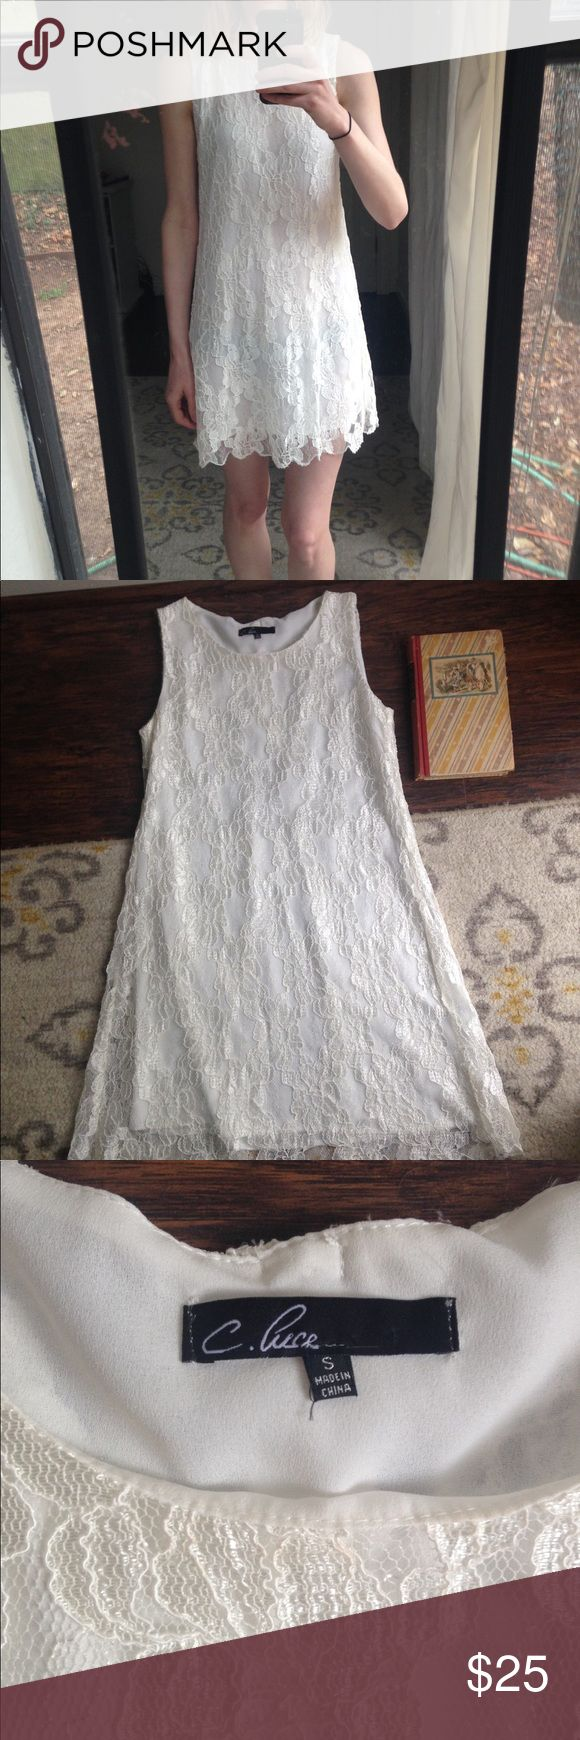 White Lacy C. Luce Party Shift Dress This sweet, lace, C. Luce dress is a show stopper! It's fully lined and features a zipper on its back. Goes great with heels and a long necklace! Great condition other than a loose thread, as pictured. Size small C. Luce Dresses Mini